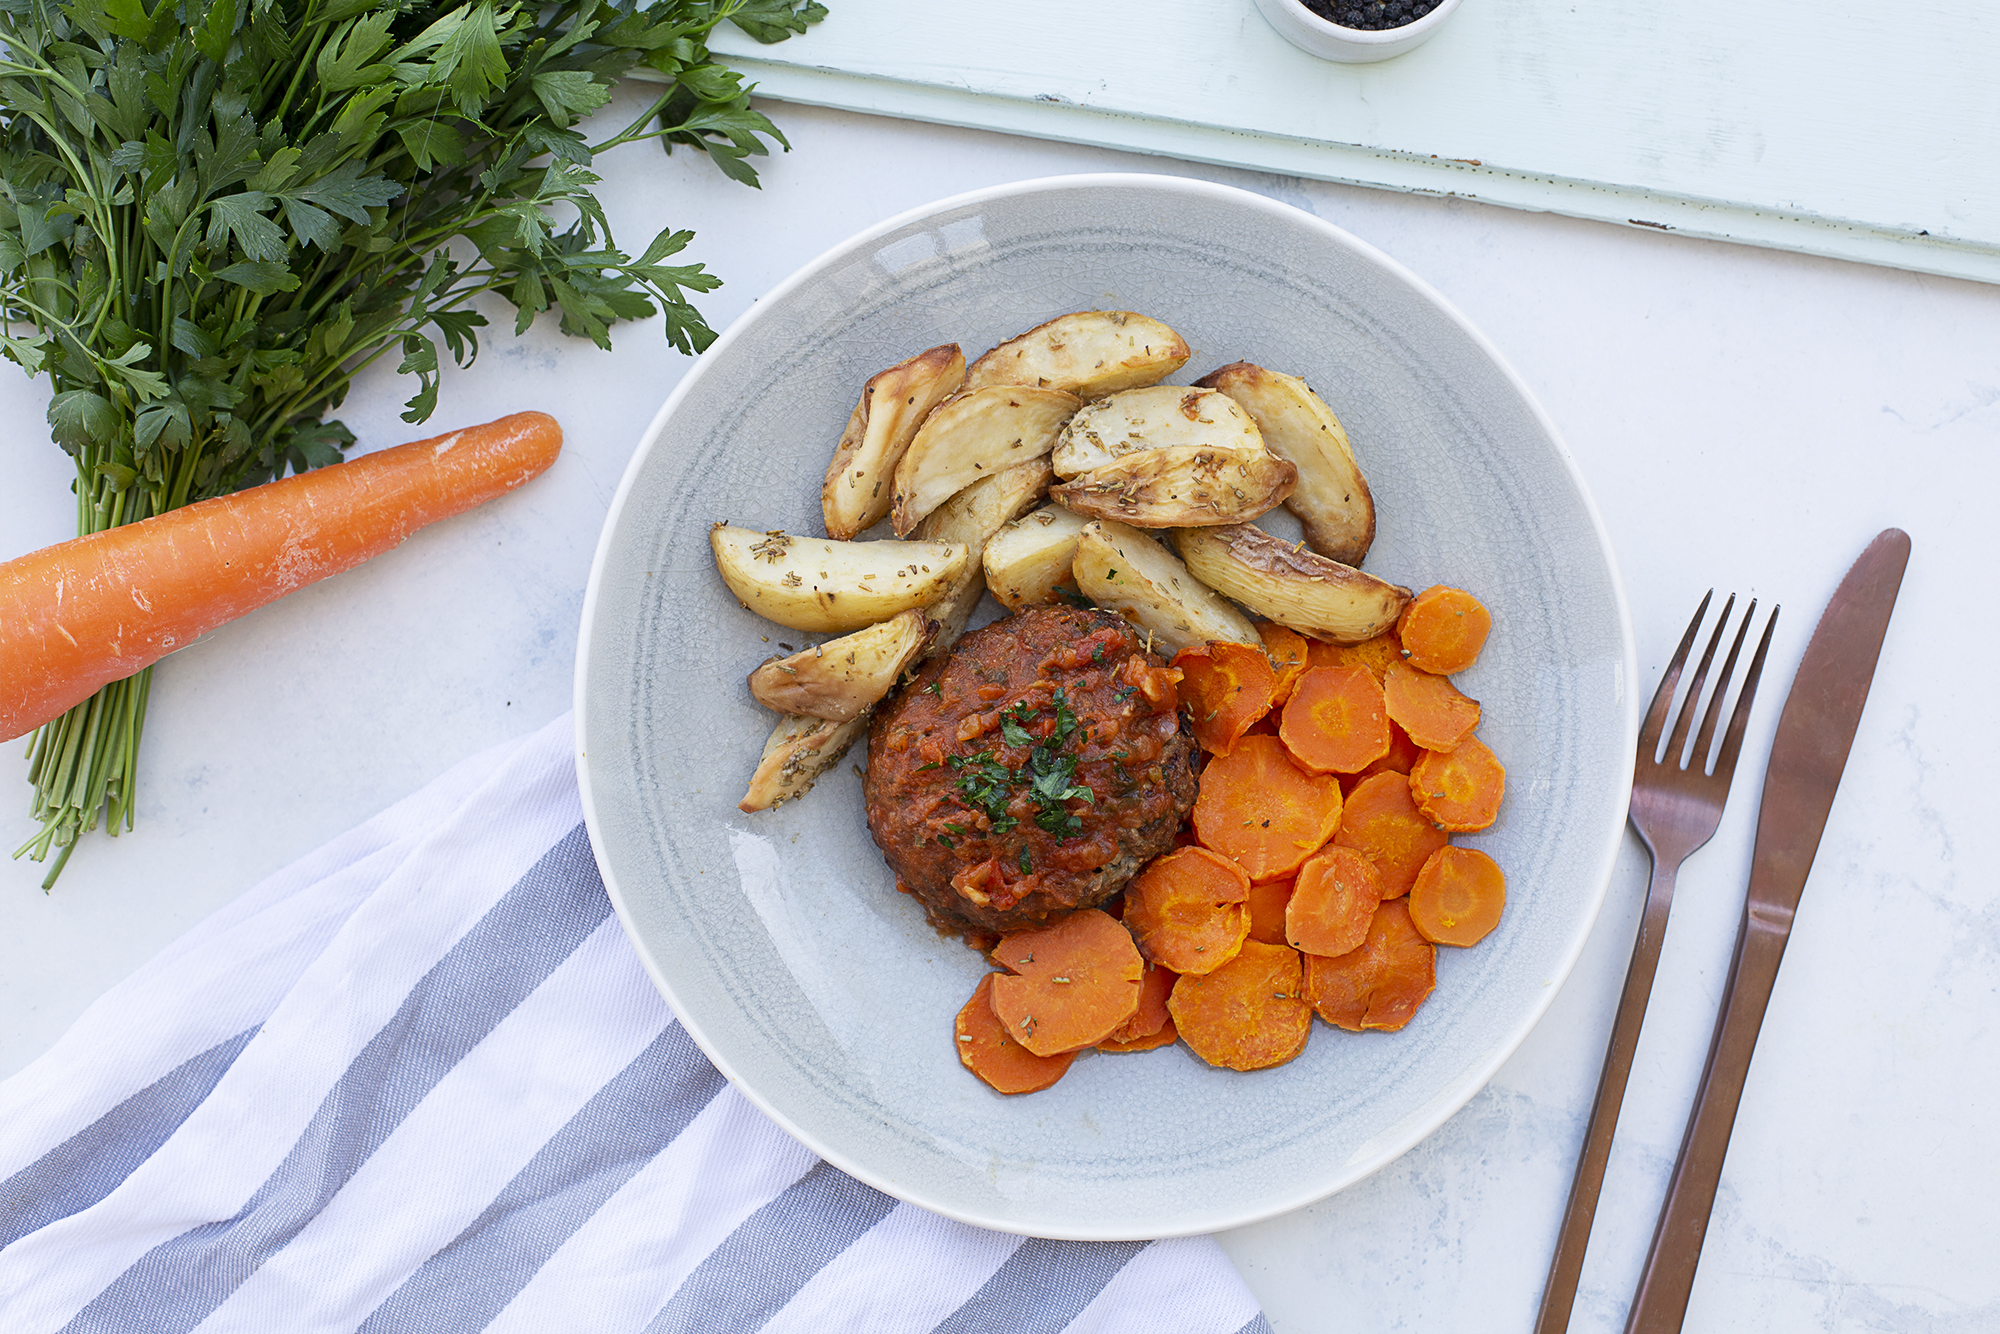 195. Naked burger served with herb roasted potato wedges and honey roasted carrots